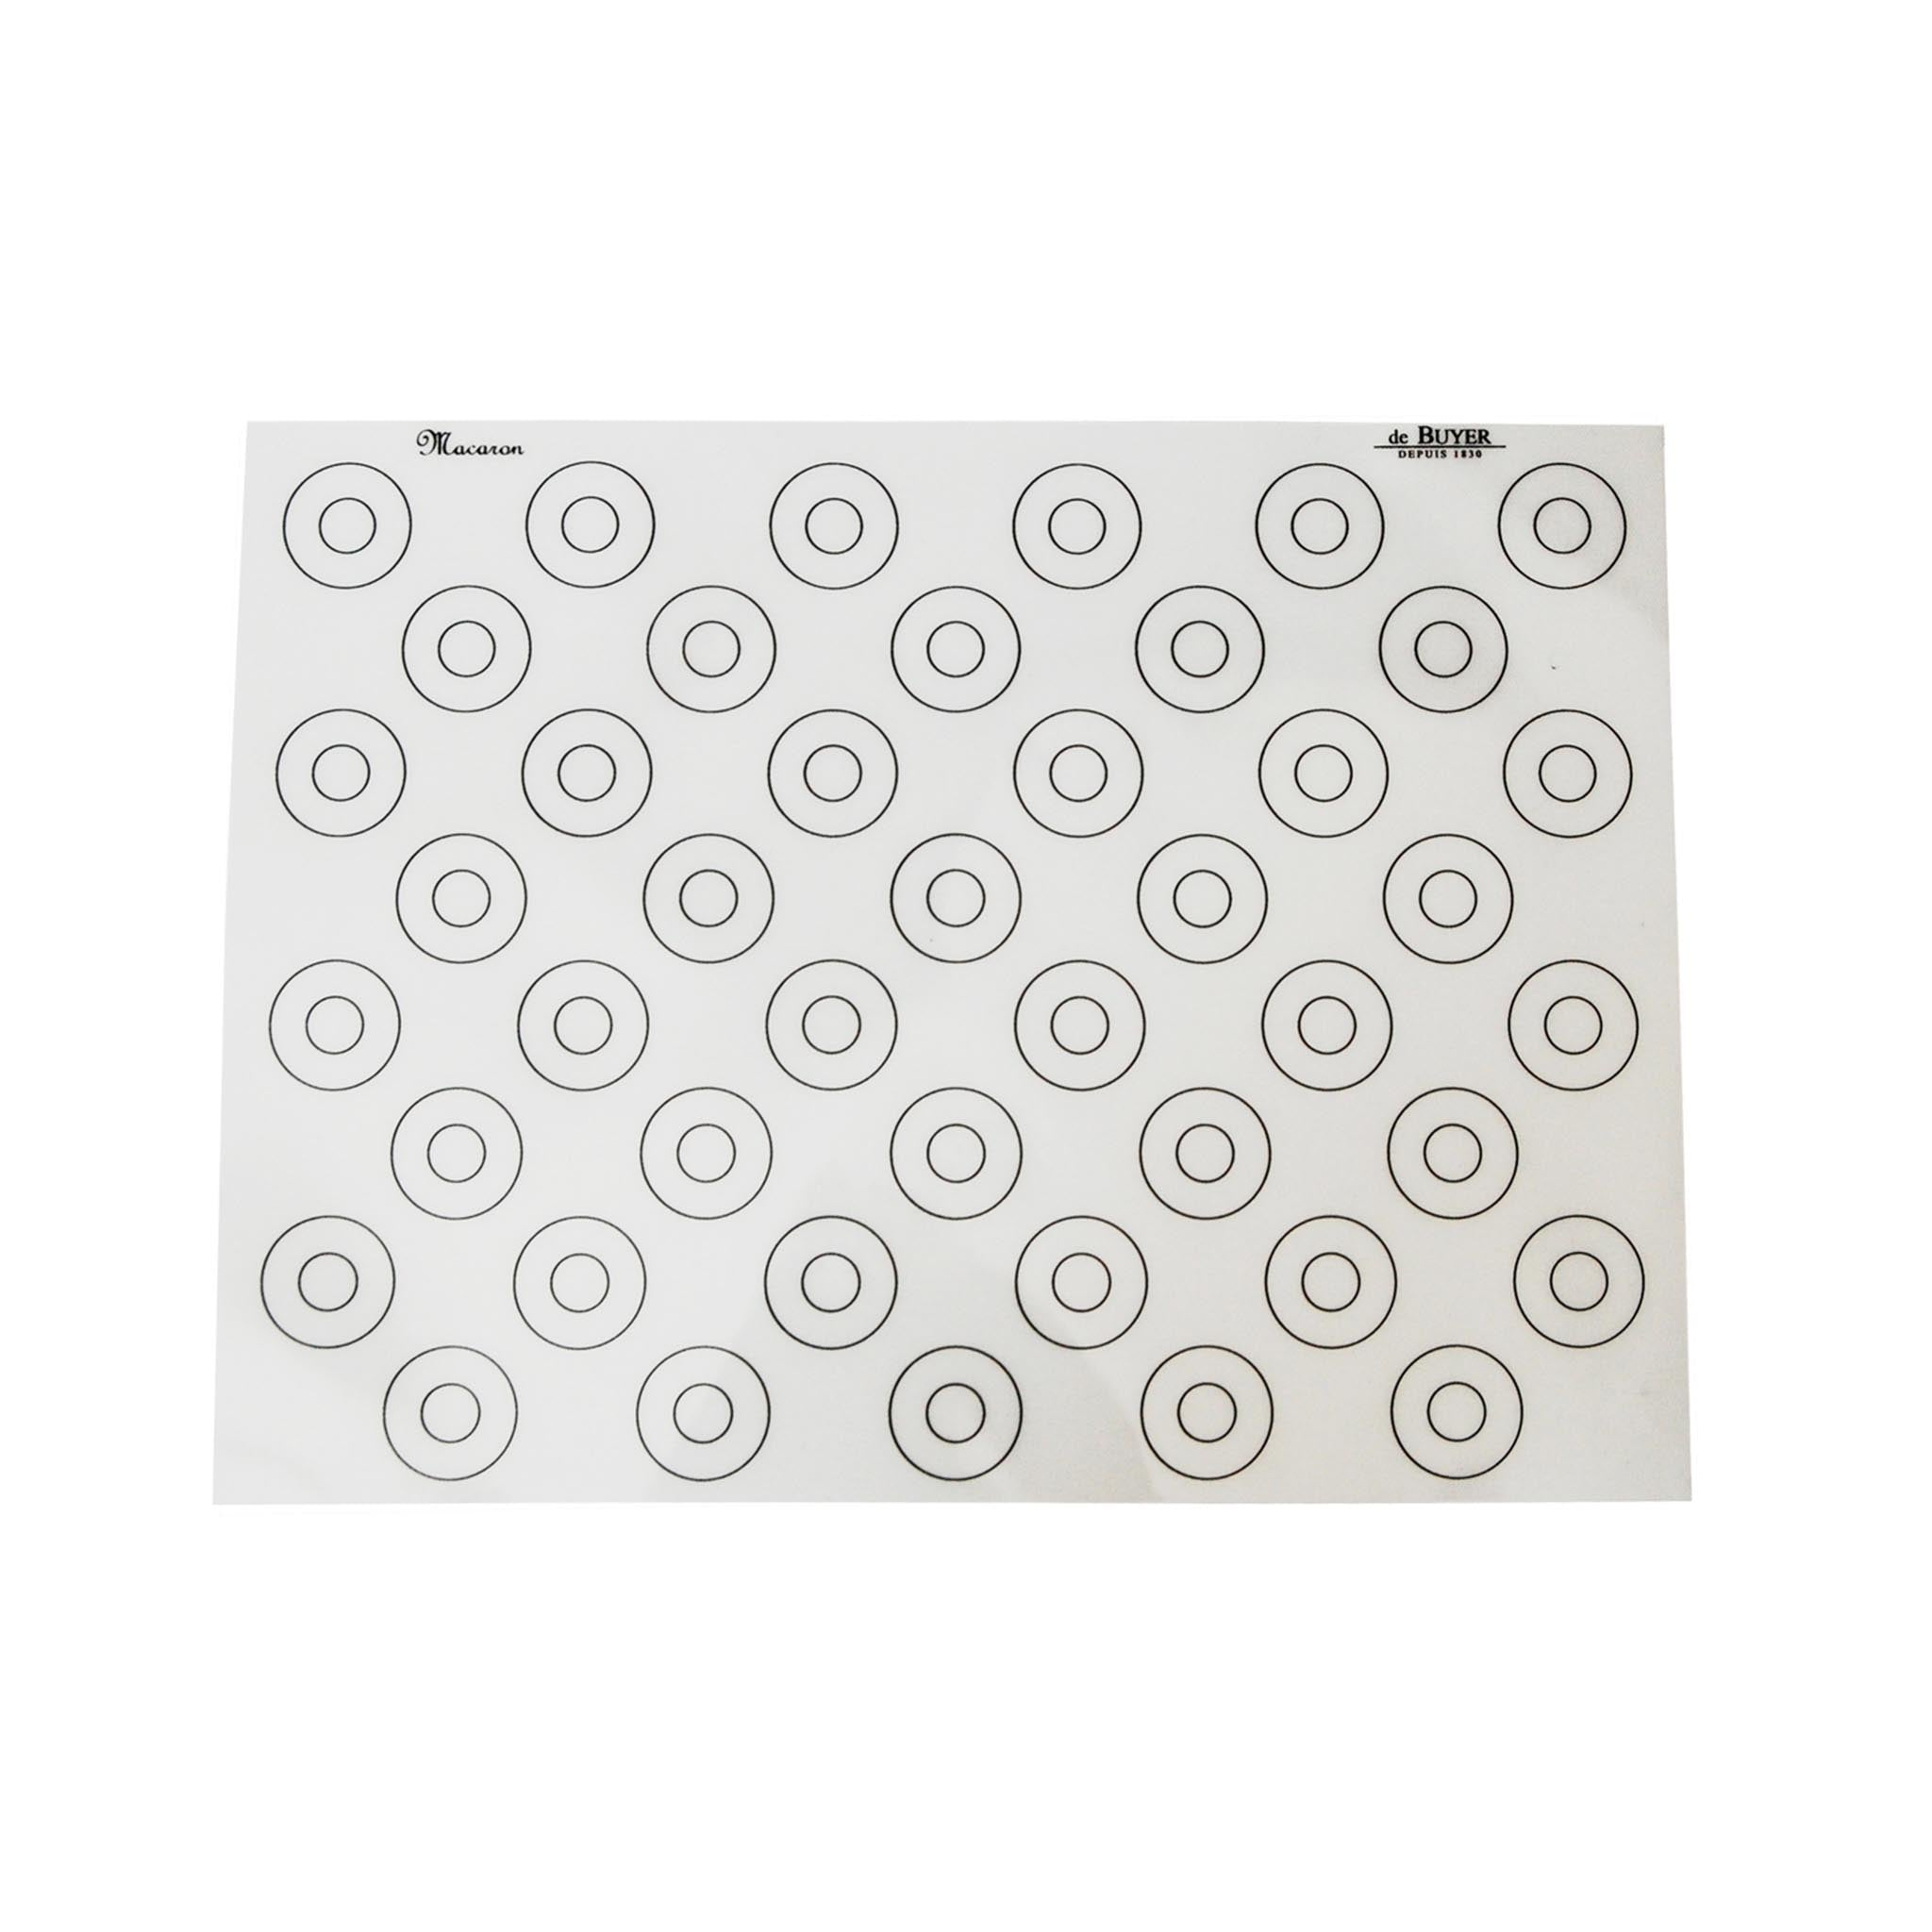 De Buyer Non-Stick Macaron Stencil Baking Mat Cookware Kitchen Utensils French Food